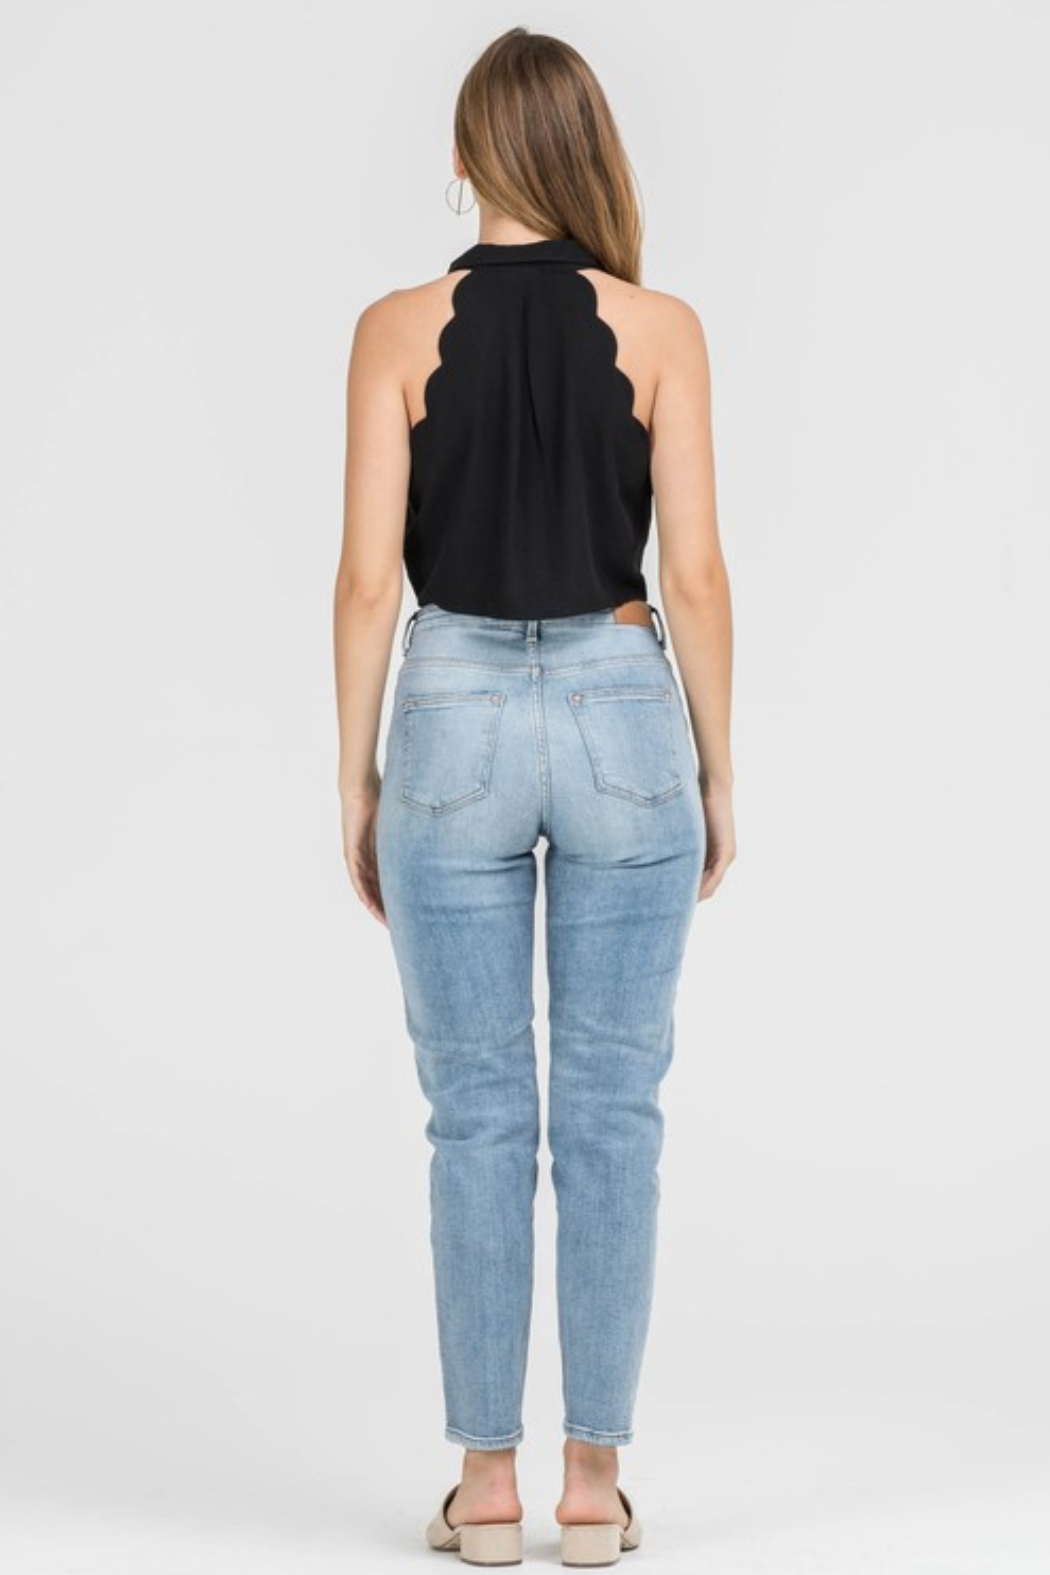 Lush Clothing  Scallop Halter Top - Side Cropped Image